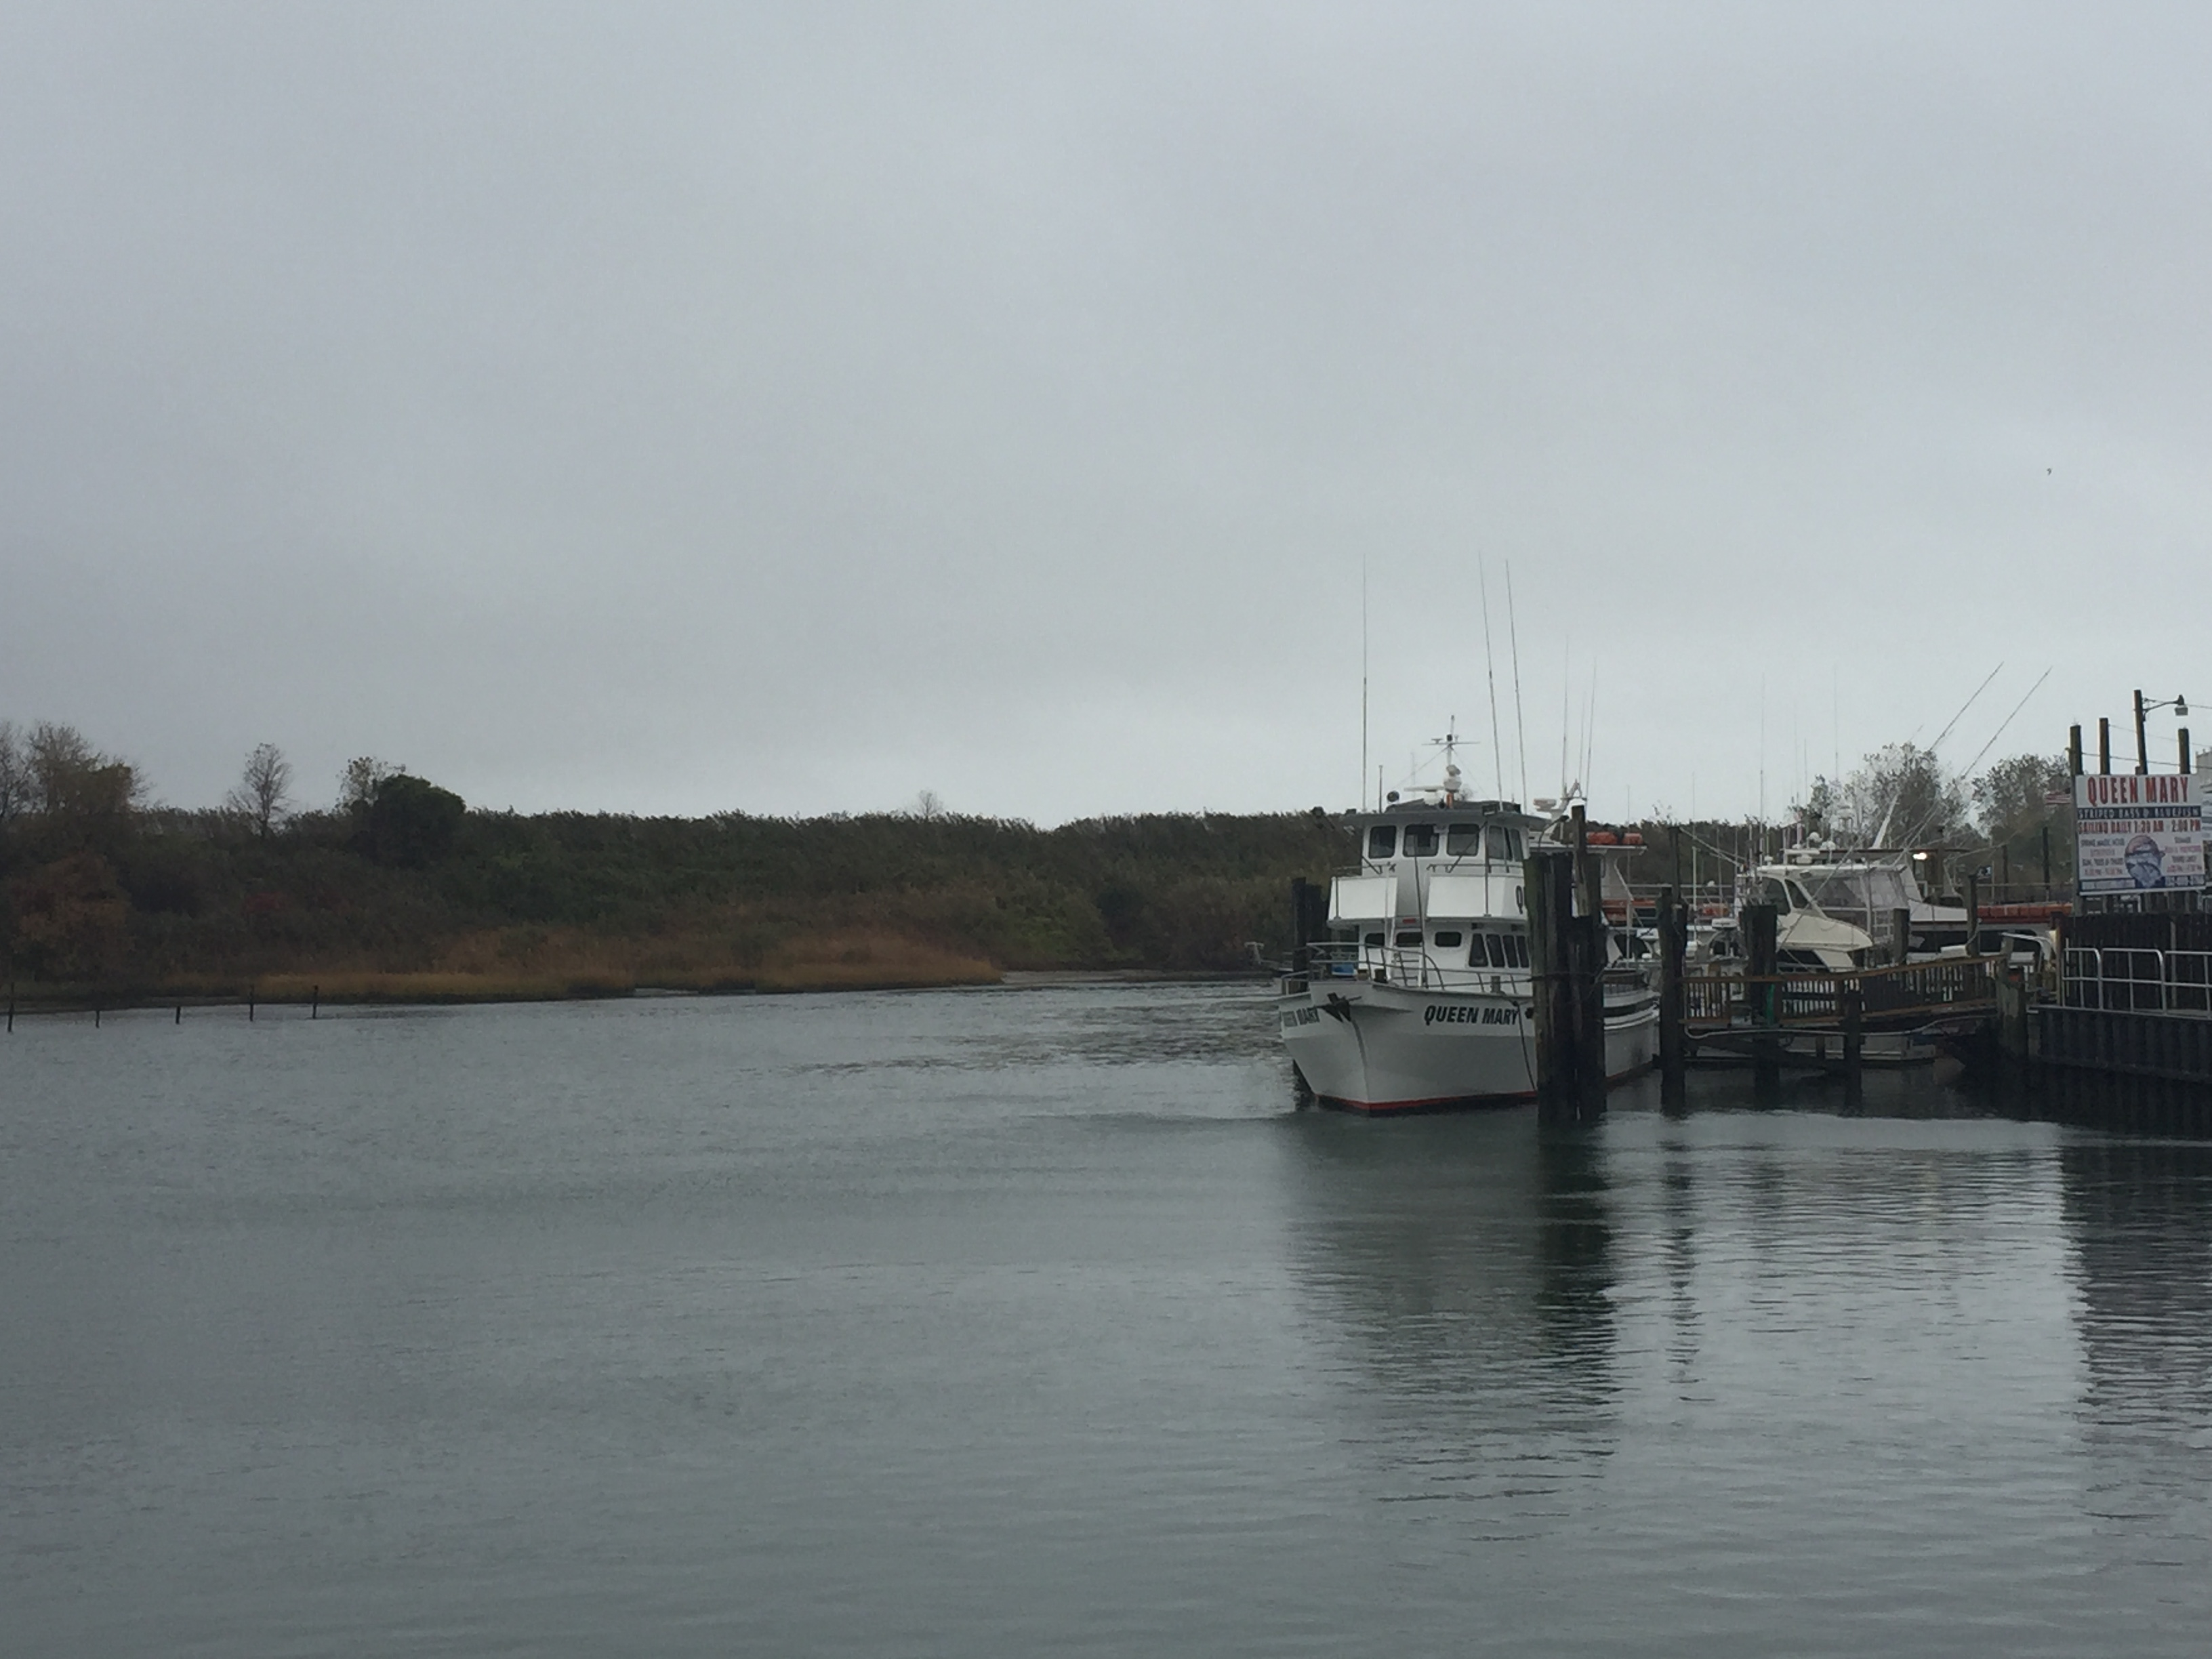 The commercial fishing channel on the east bank of the Manasquan River, Point Pleasant Beach. (Photo: Daniel Nee)